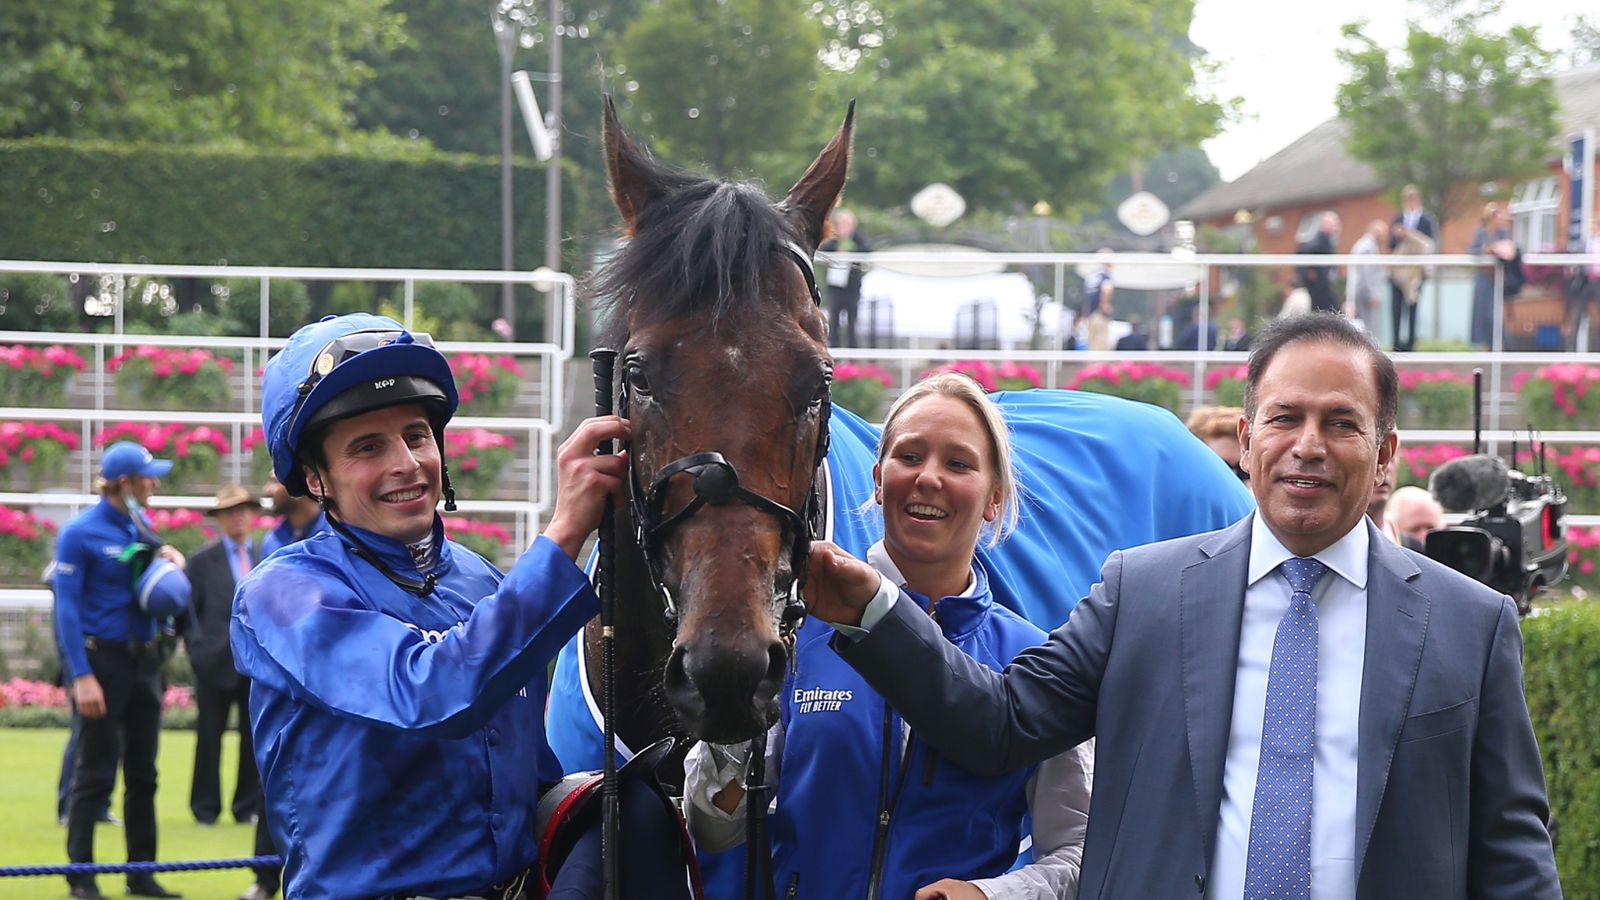 All systems go for Appleby's Arc challengers Adayar and Hurricane Lane